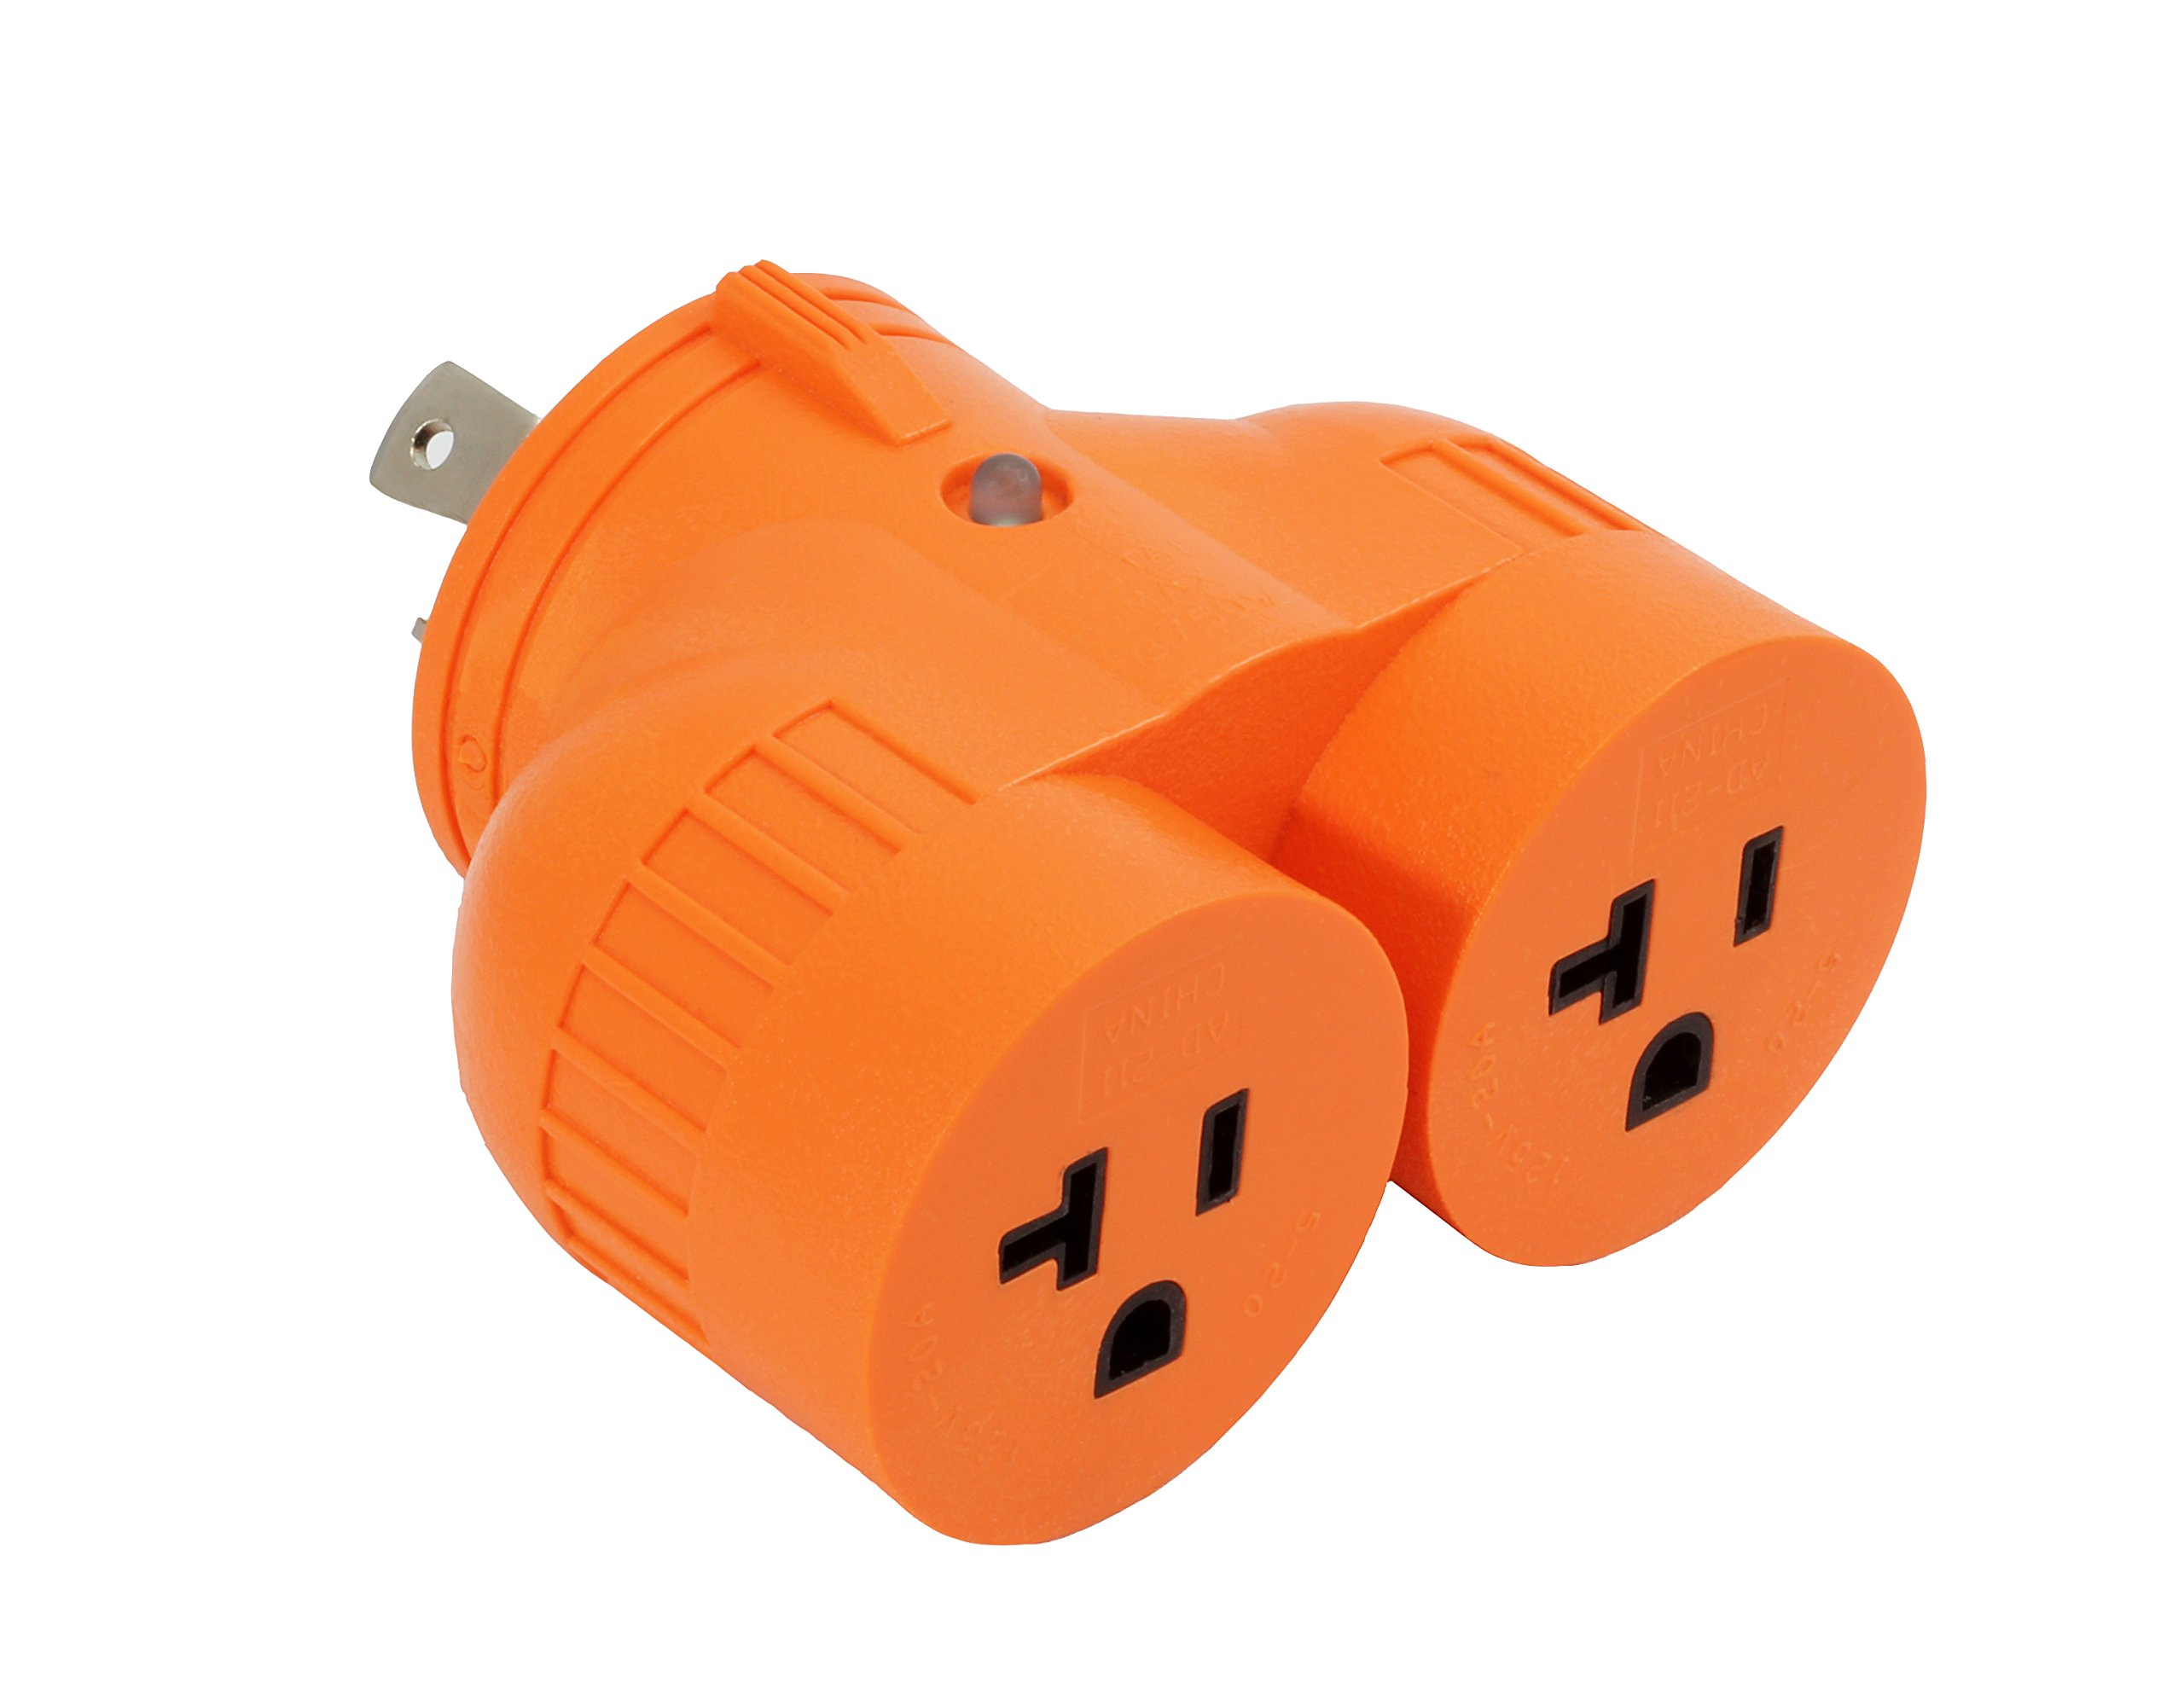 AC WORKS L5-30 30Amp 3-Prong Locking Generator Distribution Cord (L5-30 to DUO 15/20A Household Compact)